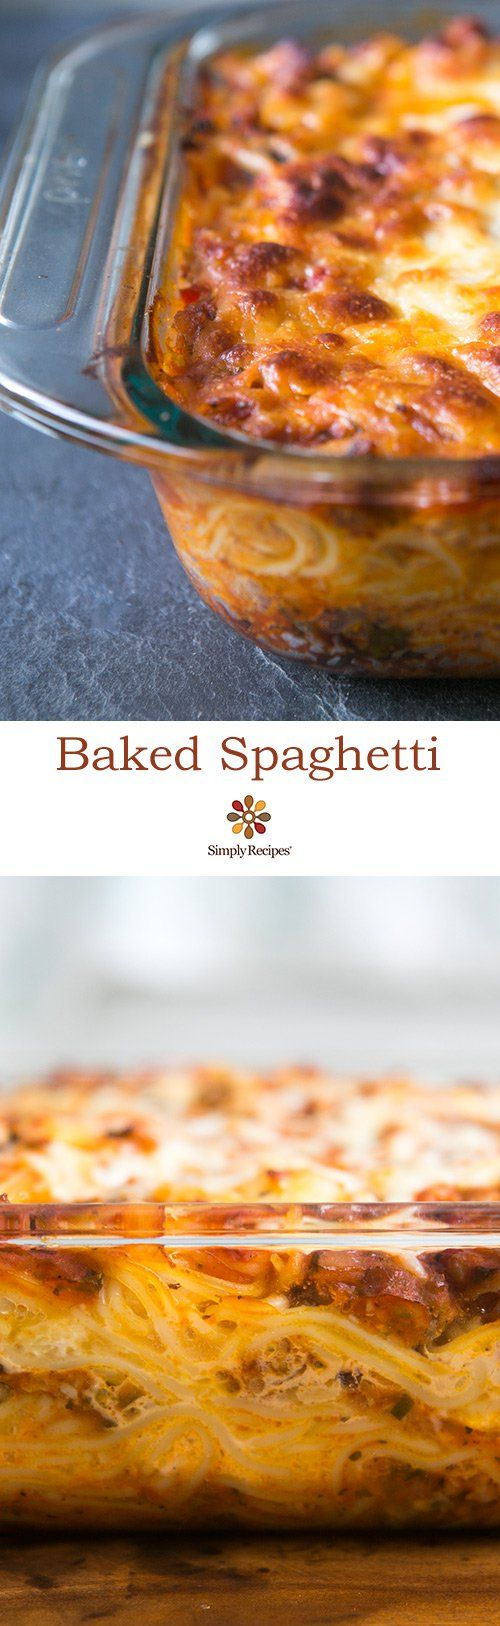 171 best images about Food - Pasta on Pinterest | Alfredo ...